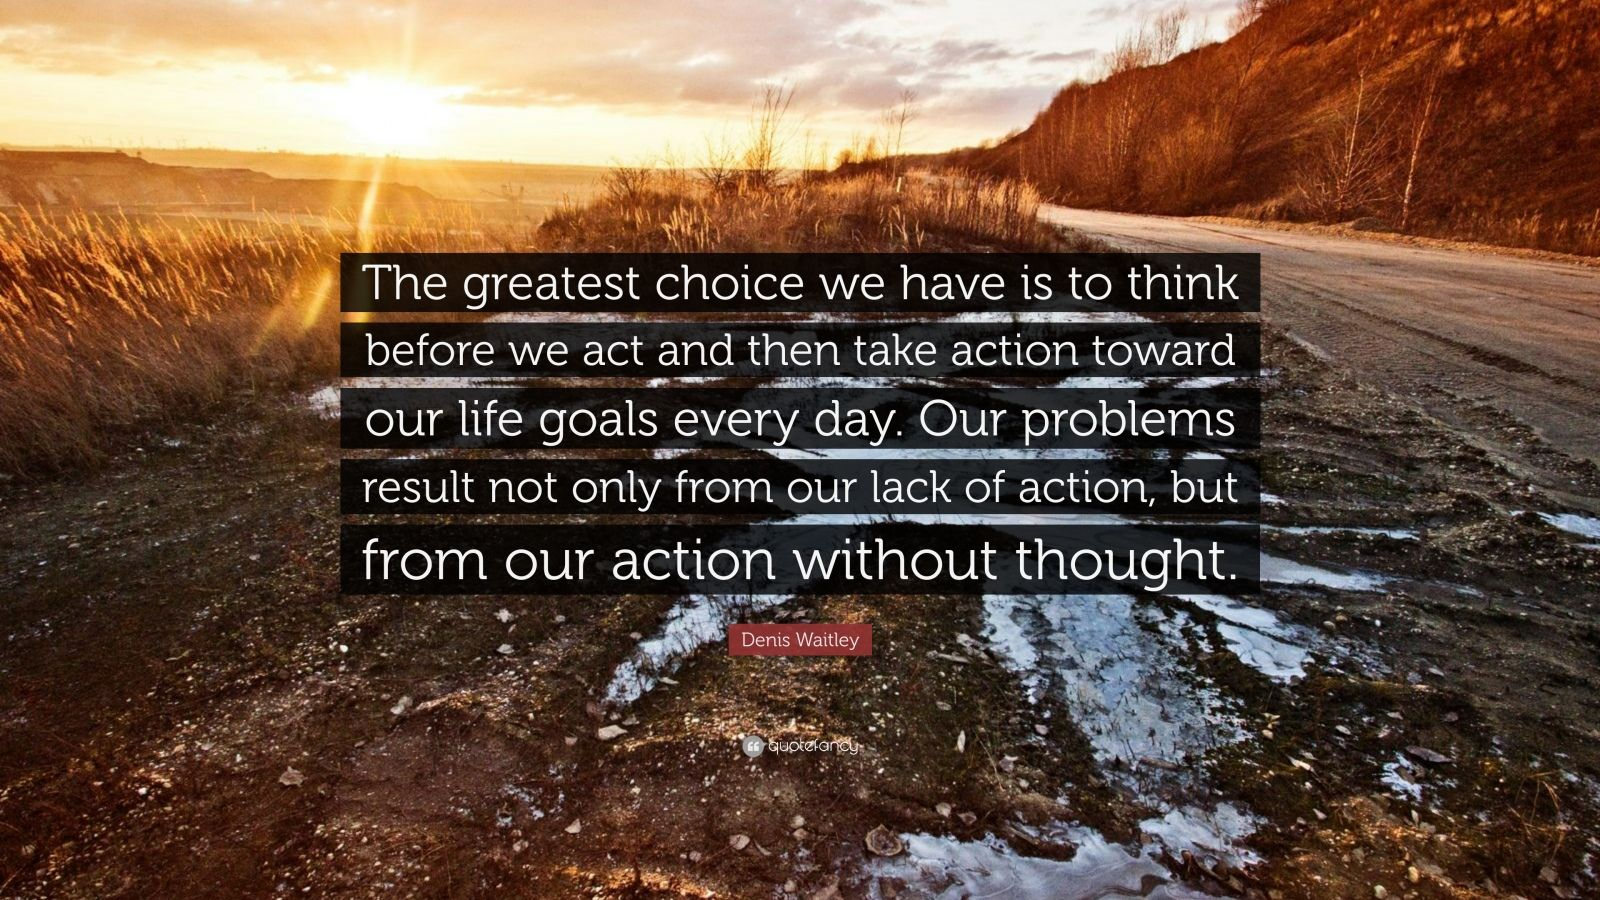 "Denis Waitley Quote: ""The greatest choice we have is to think before we act and then take action toward our life goals every day. Our problems result not only from our lack of action, but from our action without thought."""